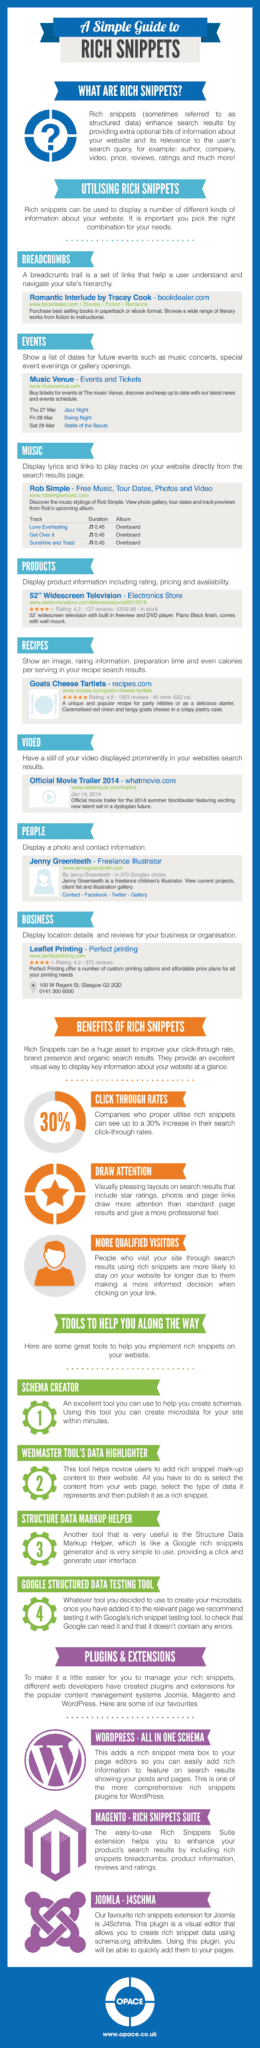 Simple guide to Rich Snippets tools and benefits infographic including Joomla Magento and WordPress